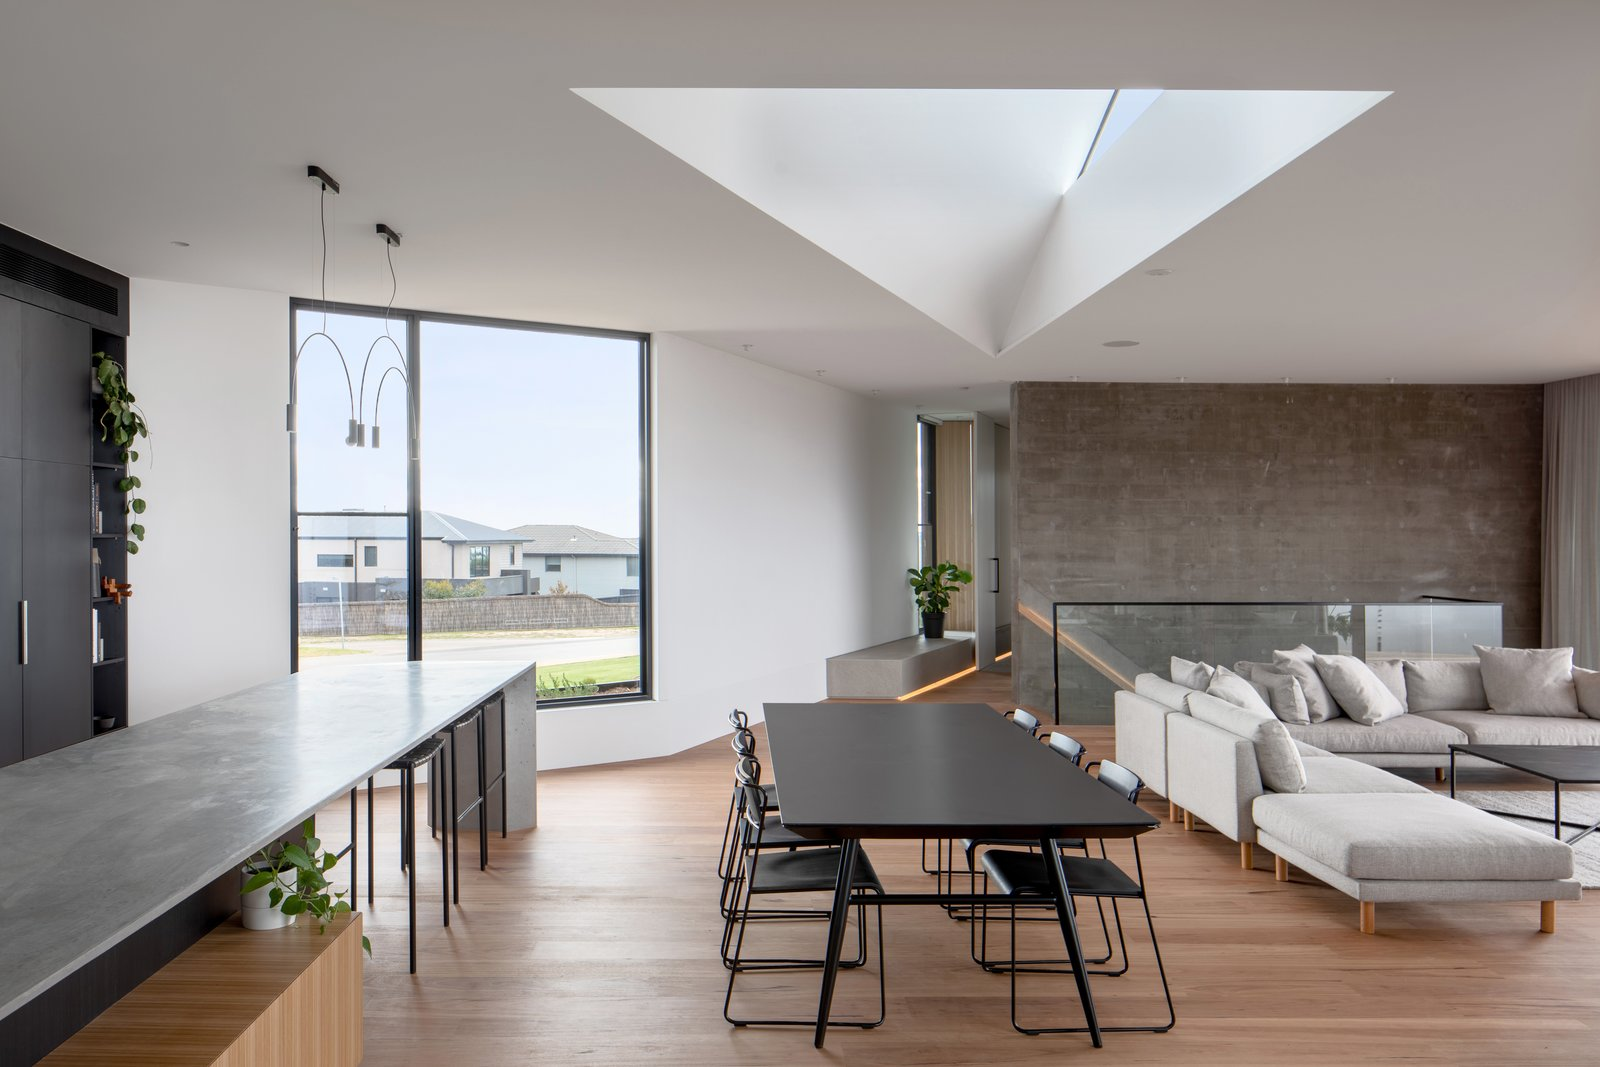 Three Angle House by Megowan Architectural